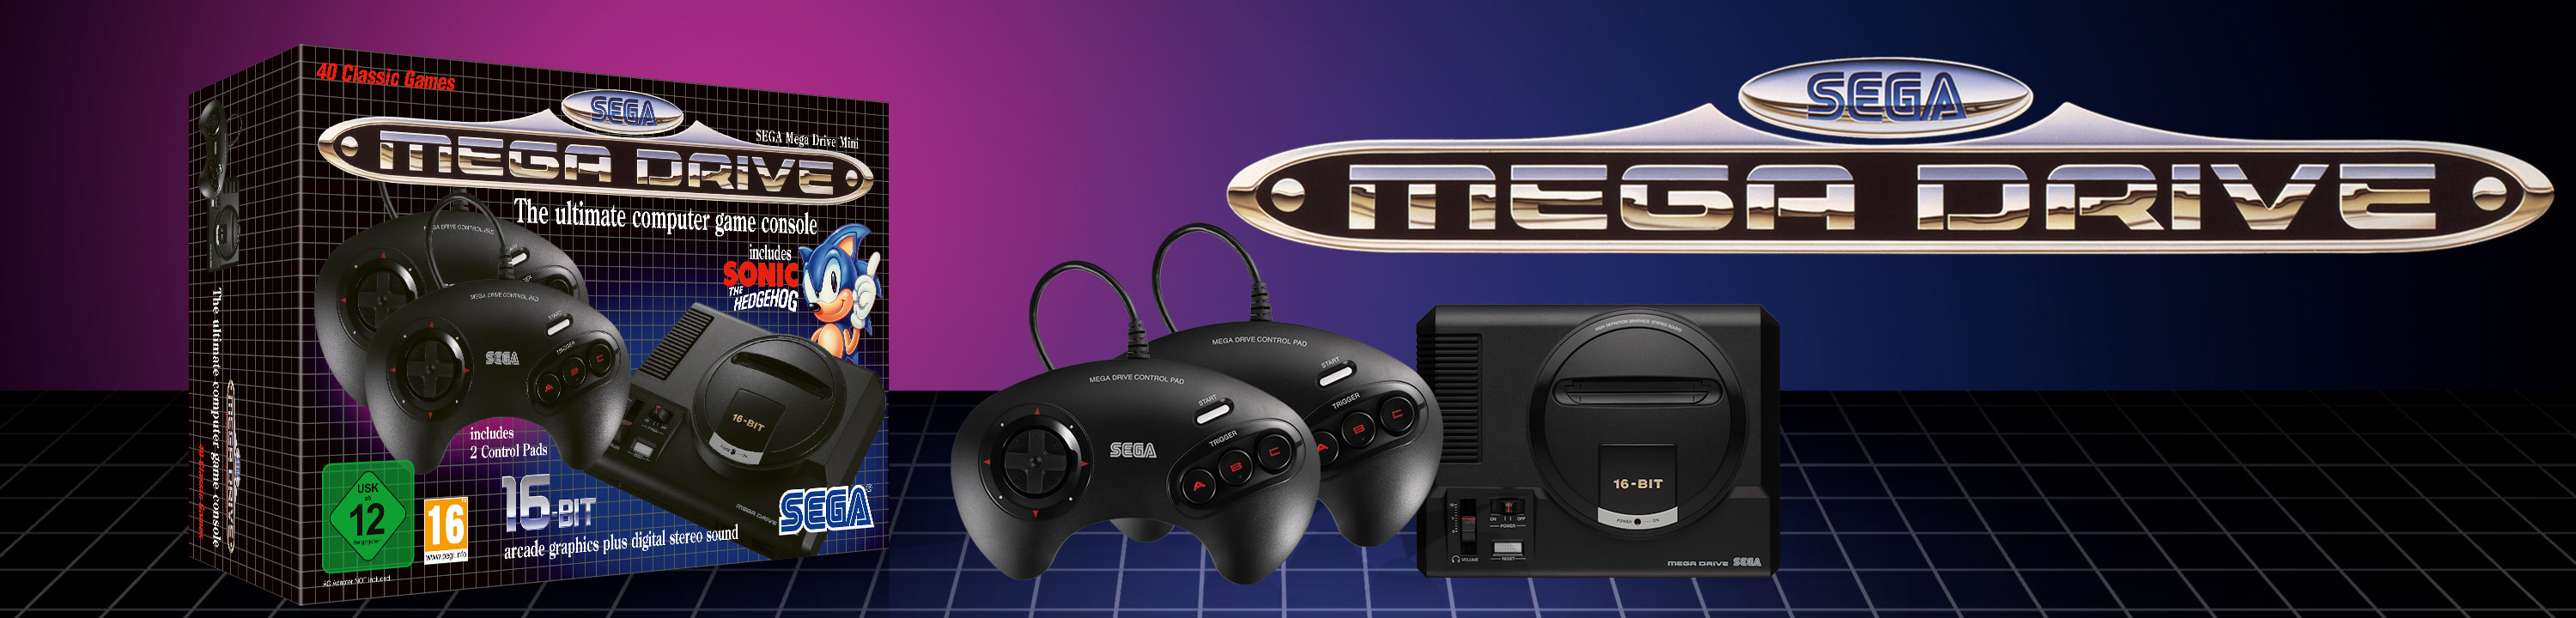 The SEGA Mega Drive Mini